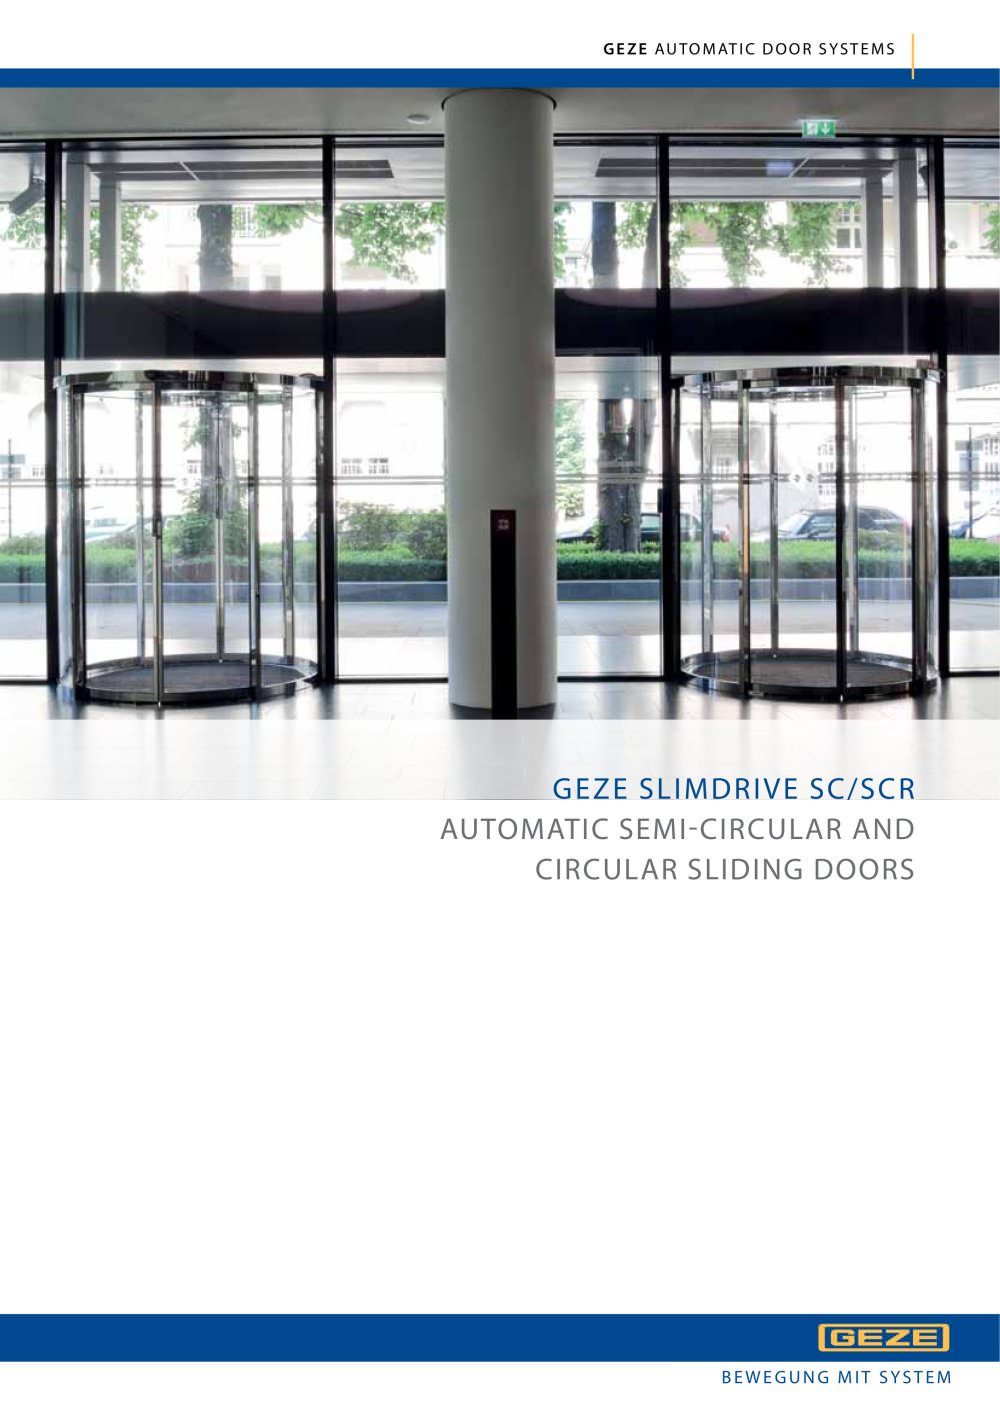 GEZE SLIMDRIVE SC/SCR  AUTOMATIC SEMI-CIRCULAR AND CIRCULAR SLIDING DOORS - 1 / 32 Pages  sc 1 st  Catalogues Archiexpo & GEZE SLIMDRIVE SC/SCR : AUTOMATIC SEMI-CIRCULAR AND CIRCULAR SLIDING ...